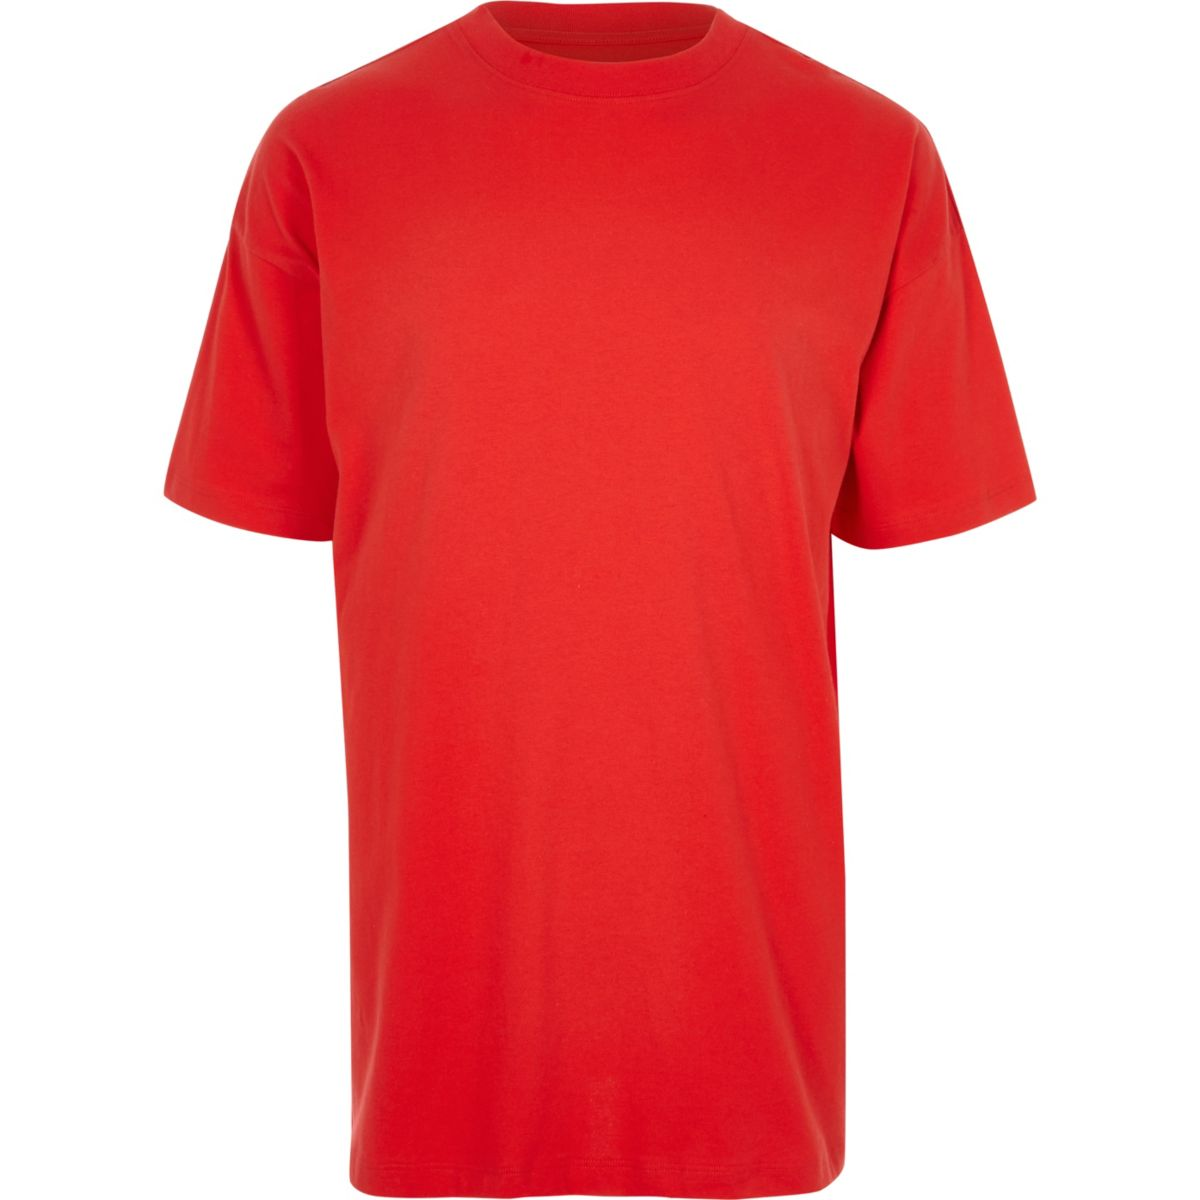 Red oversized short sleeve T-shirt